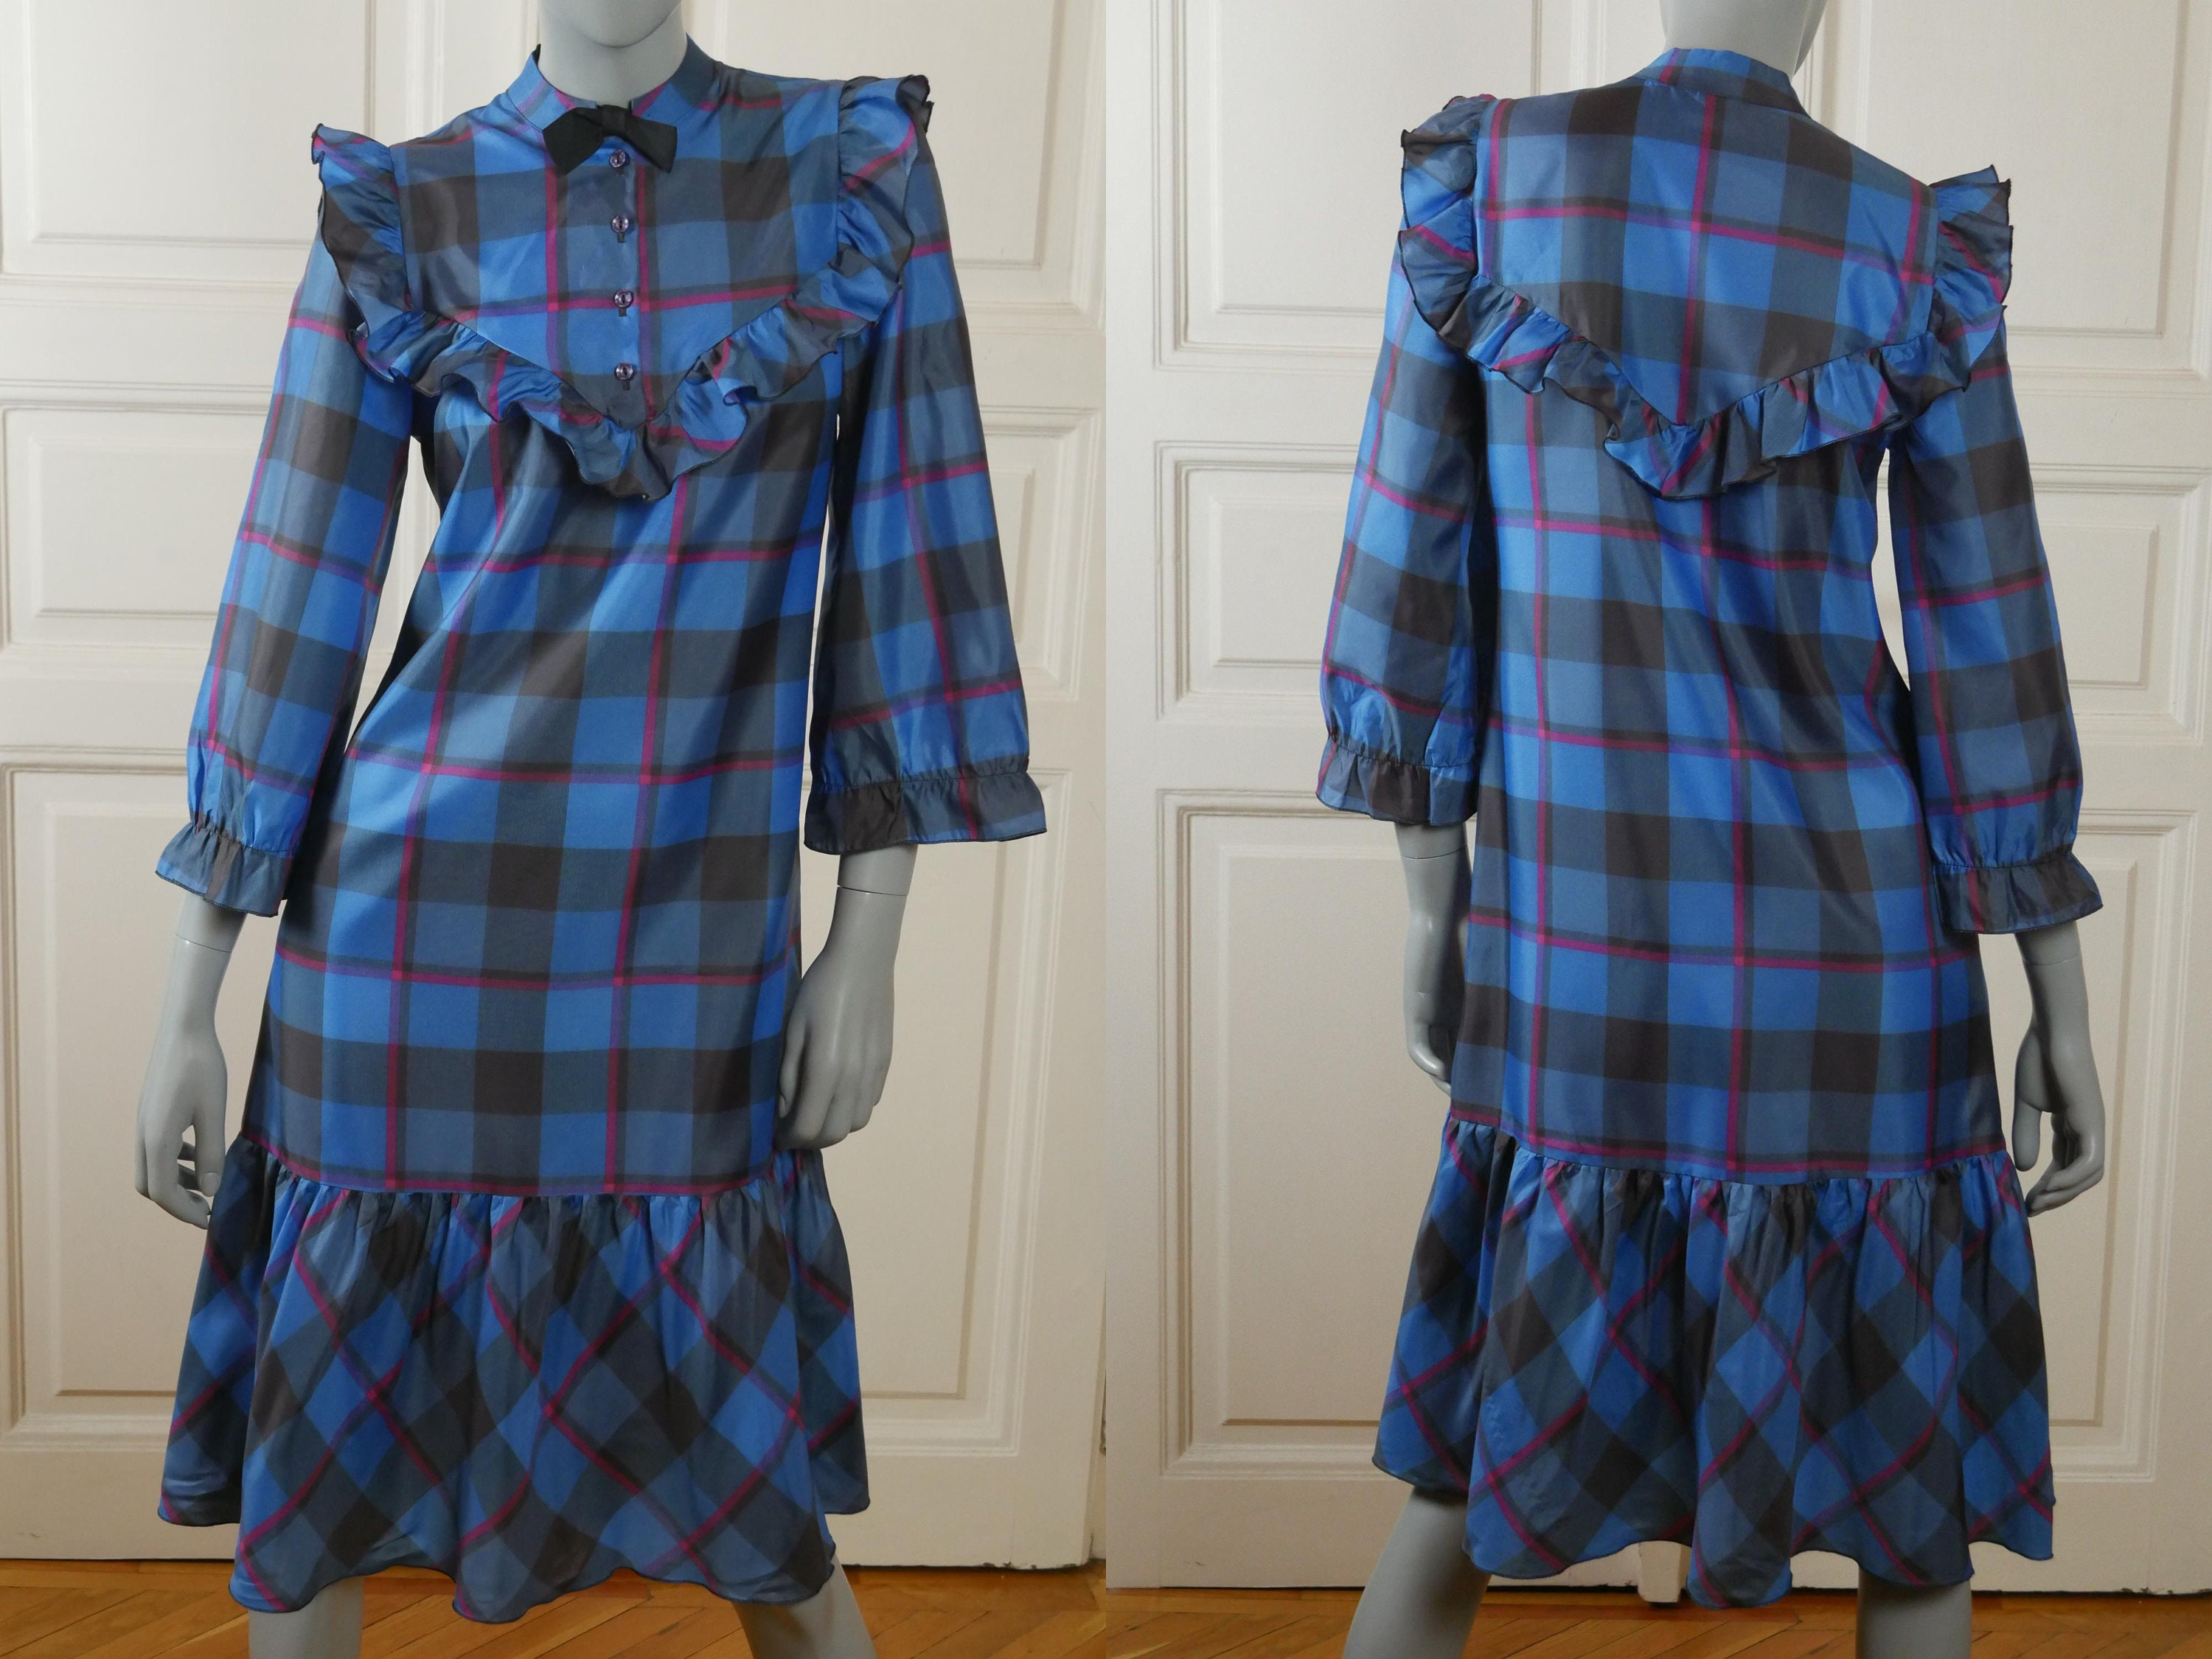 80s Dresses | Casual to Party Dresses 1980S Prairie Dress, European Vintage Turquoise Blue Black  Pink Plaid Knee Length Tartan Peasant Made in Finland Size 6 Us, 10 Uk $76.21 AT vintagedancer.com